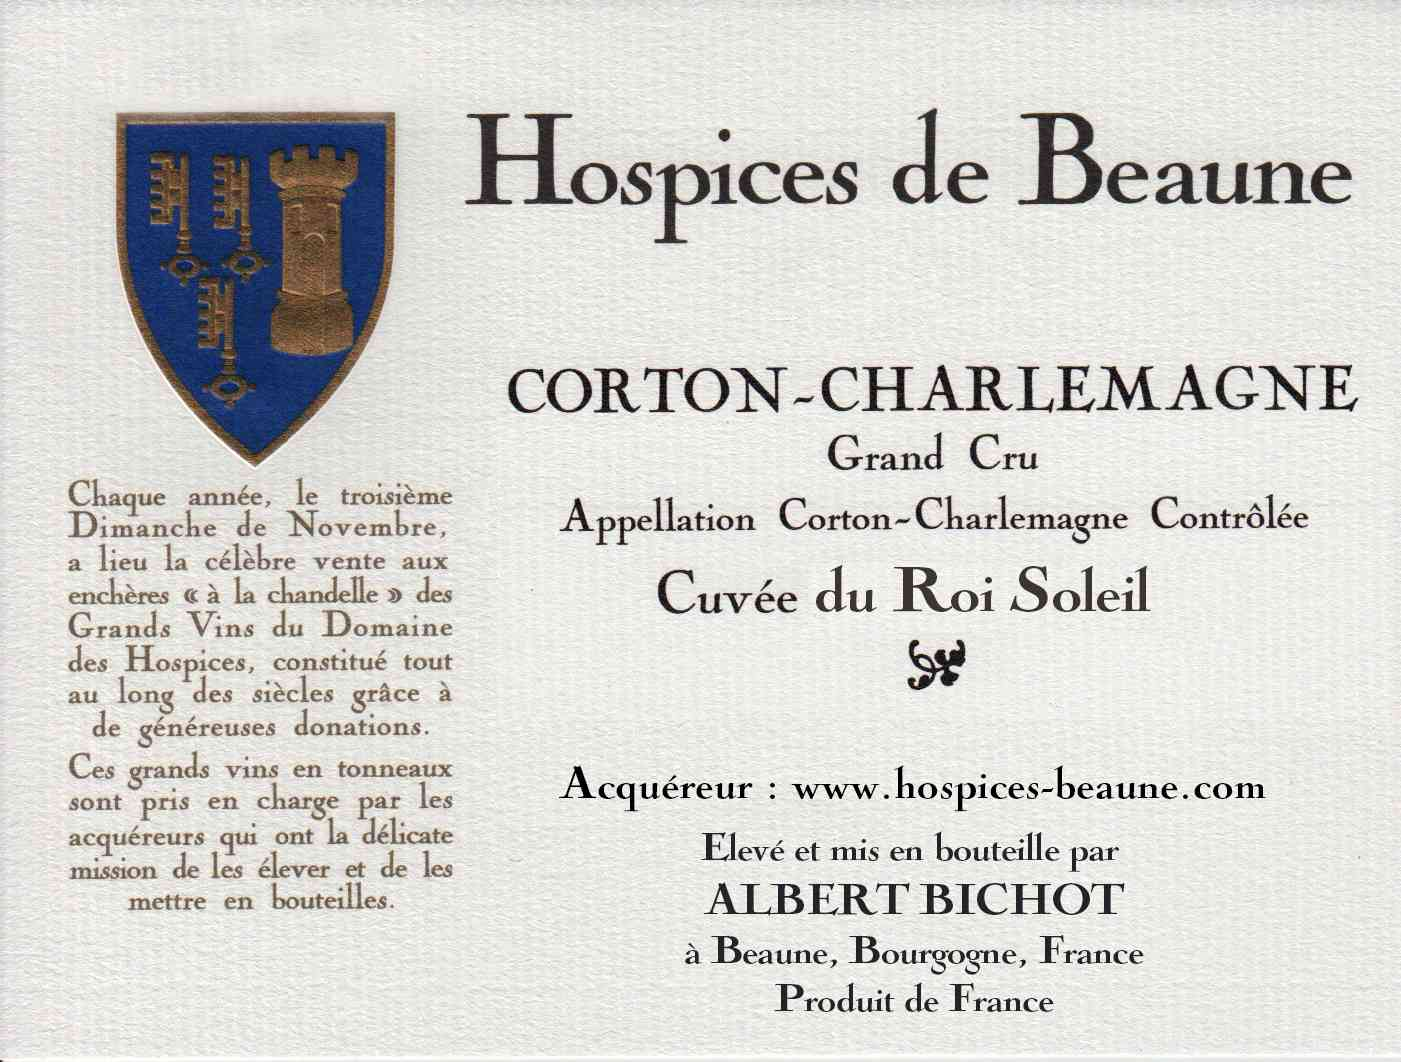 Encheres-auction-HospicesdeBeaune-AlbertBichot-CortonCharlemagne-GrandCru-Cuvee-RoiSoleil